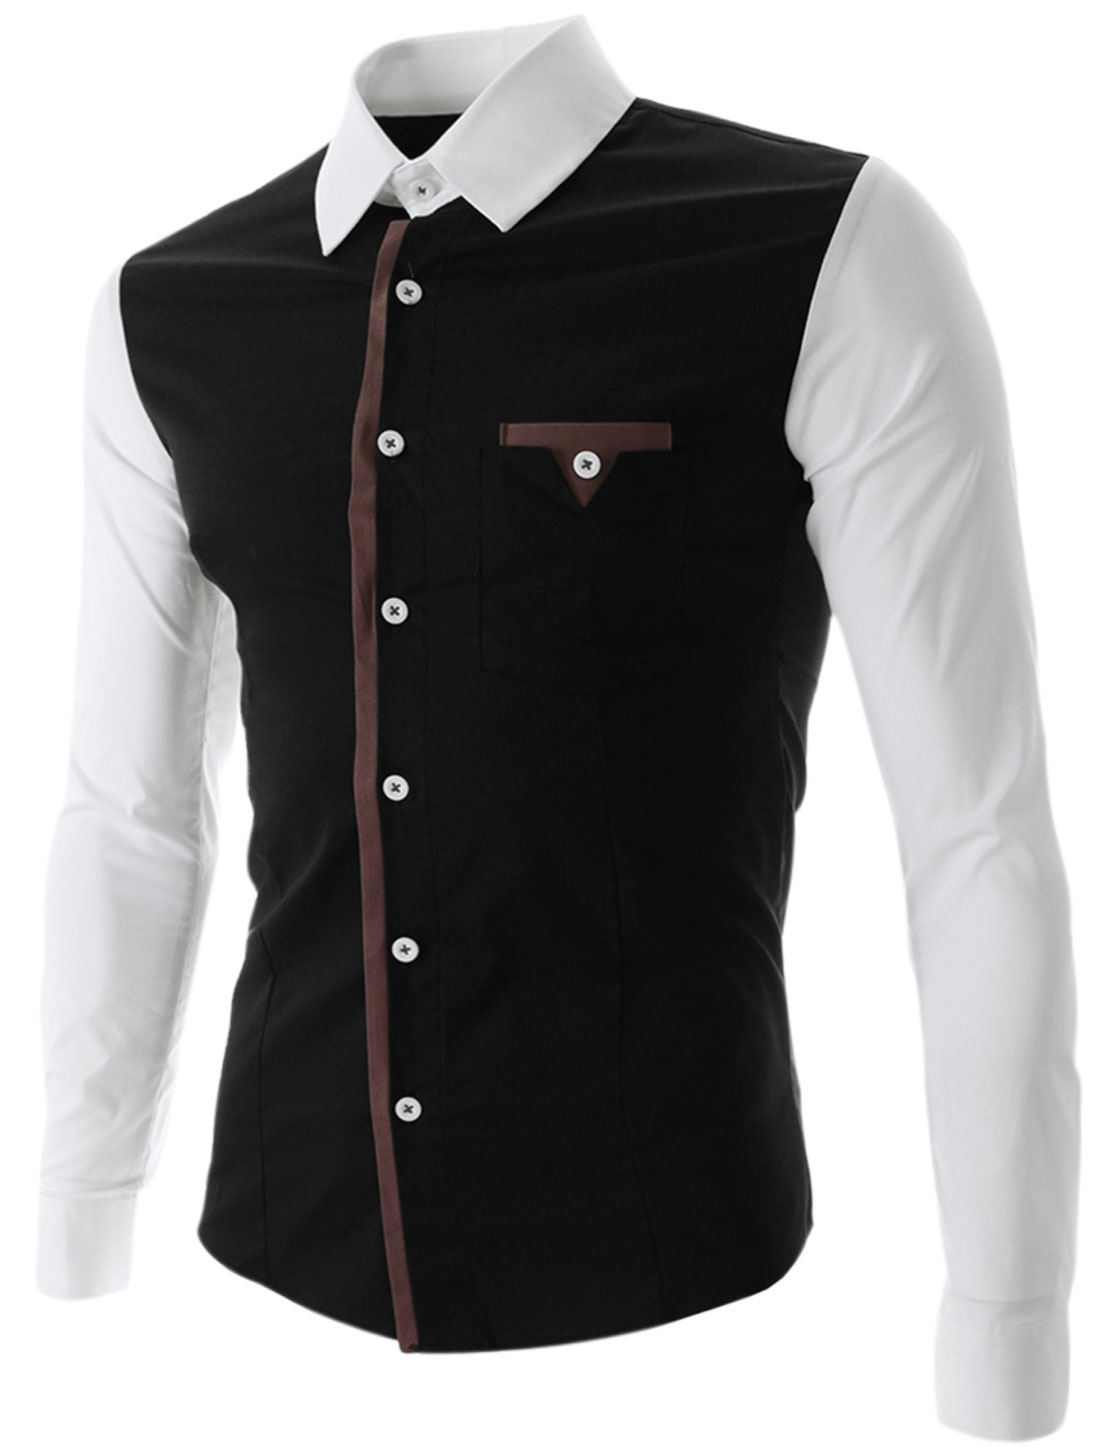 Man Single Breasted Chest Pocket Contrast Collar Sleeves Shirt Black M